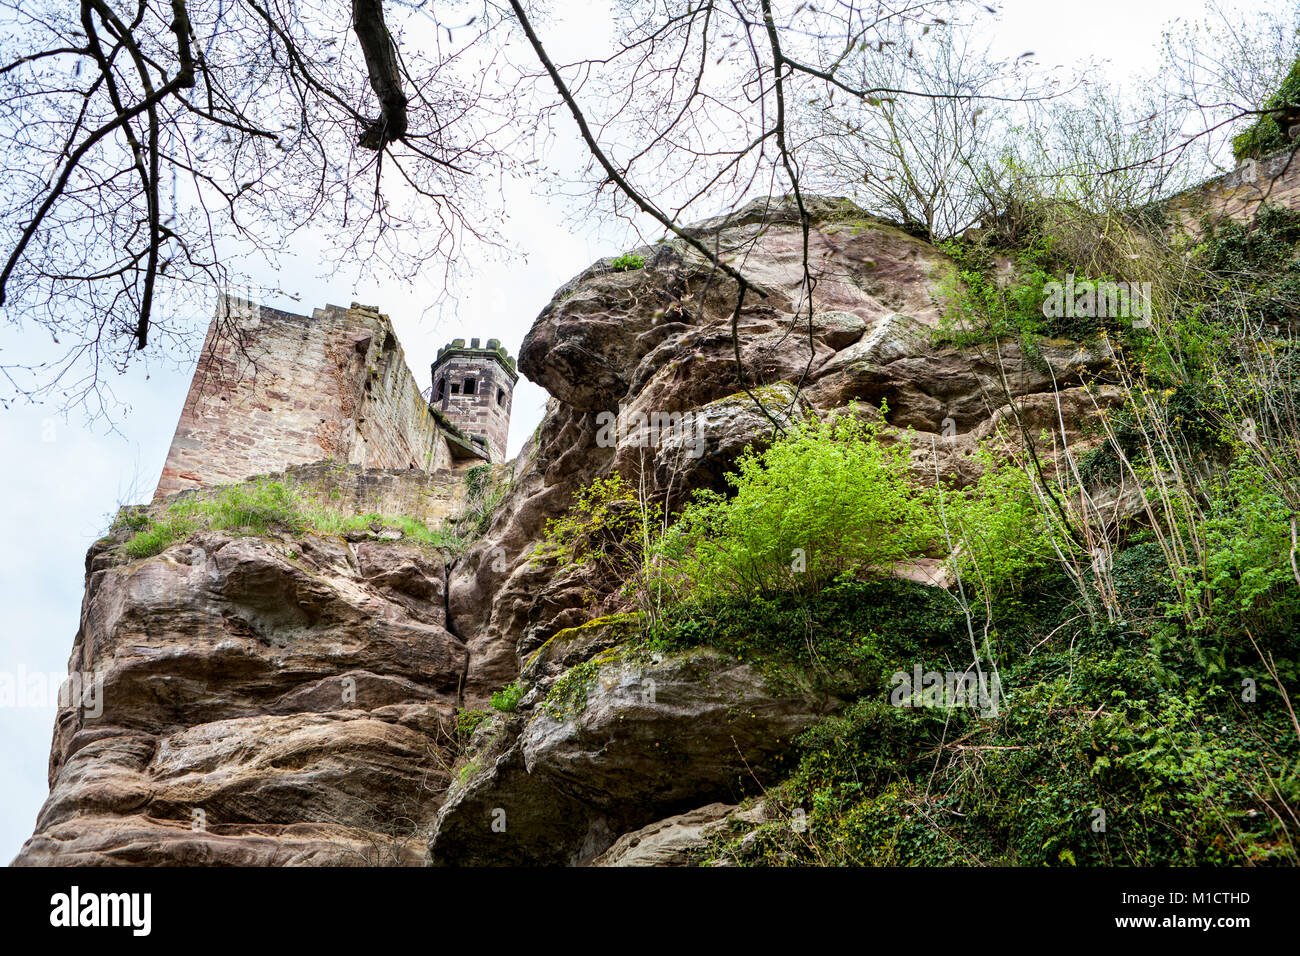 Hardenberg Castle, ruin near Nörten-Hardenberg, district of Northeim, Lower Saxony, Germany - Stock Image